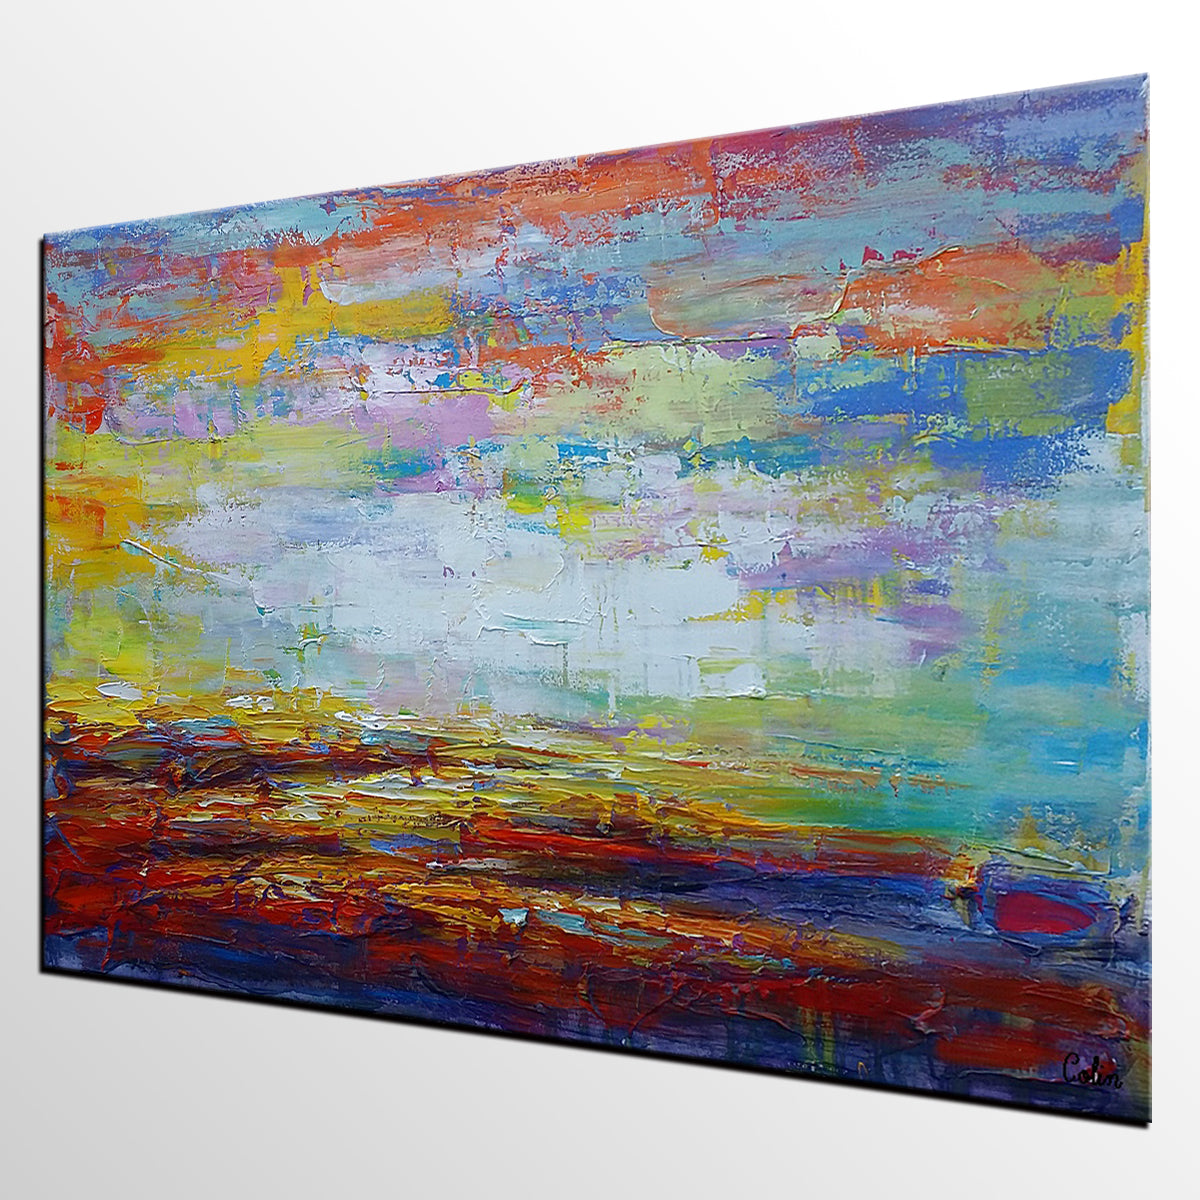 Home Art, Original Wall Art, Landscape Painting, Large Art, Canvas Art, Wall Art, Original Artwork, Canvas Painting, Abstract Art 145